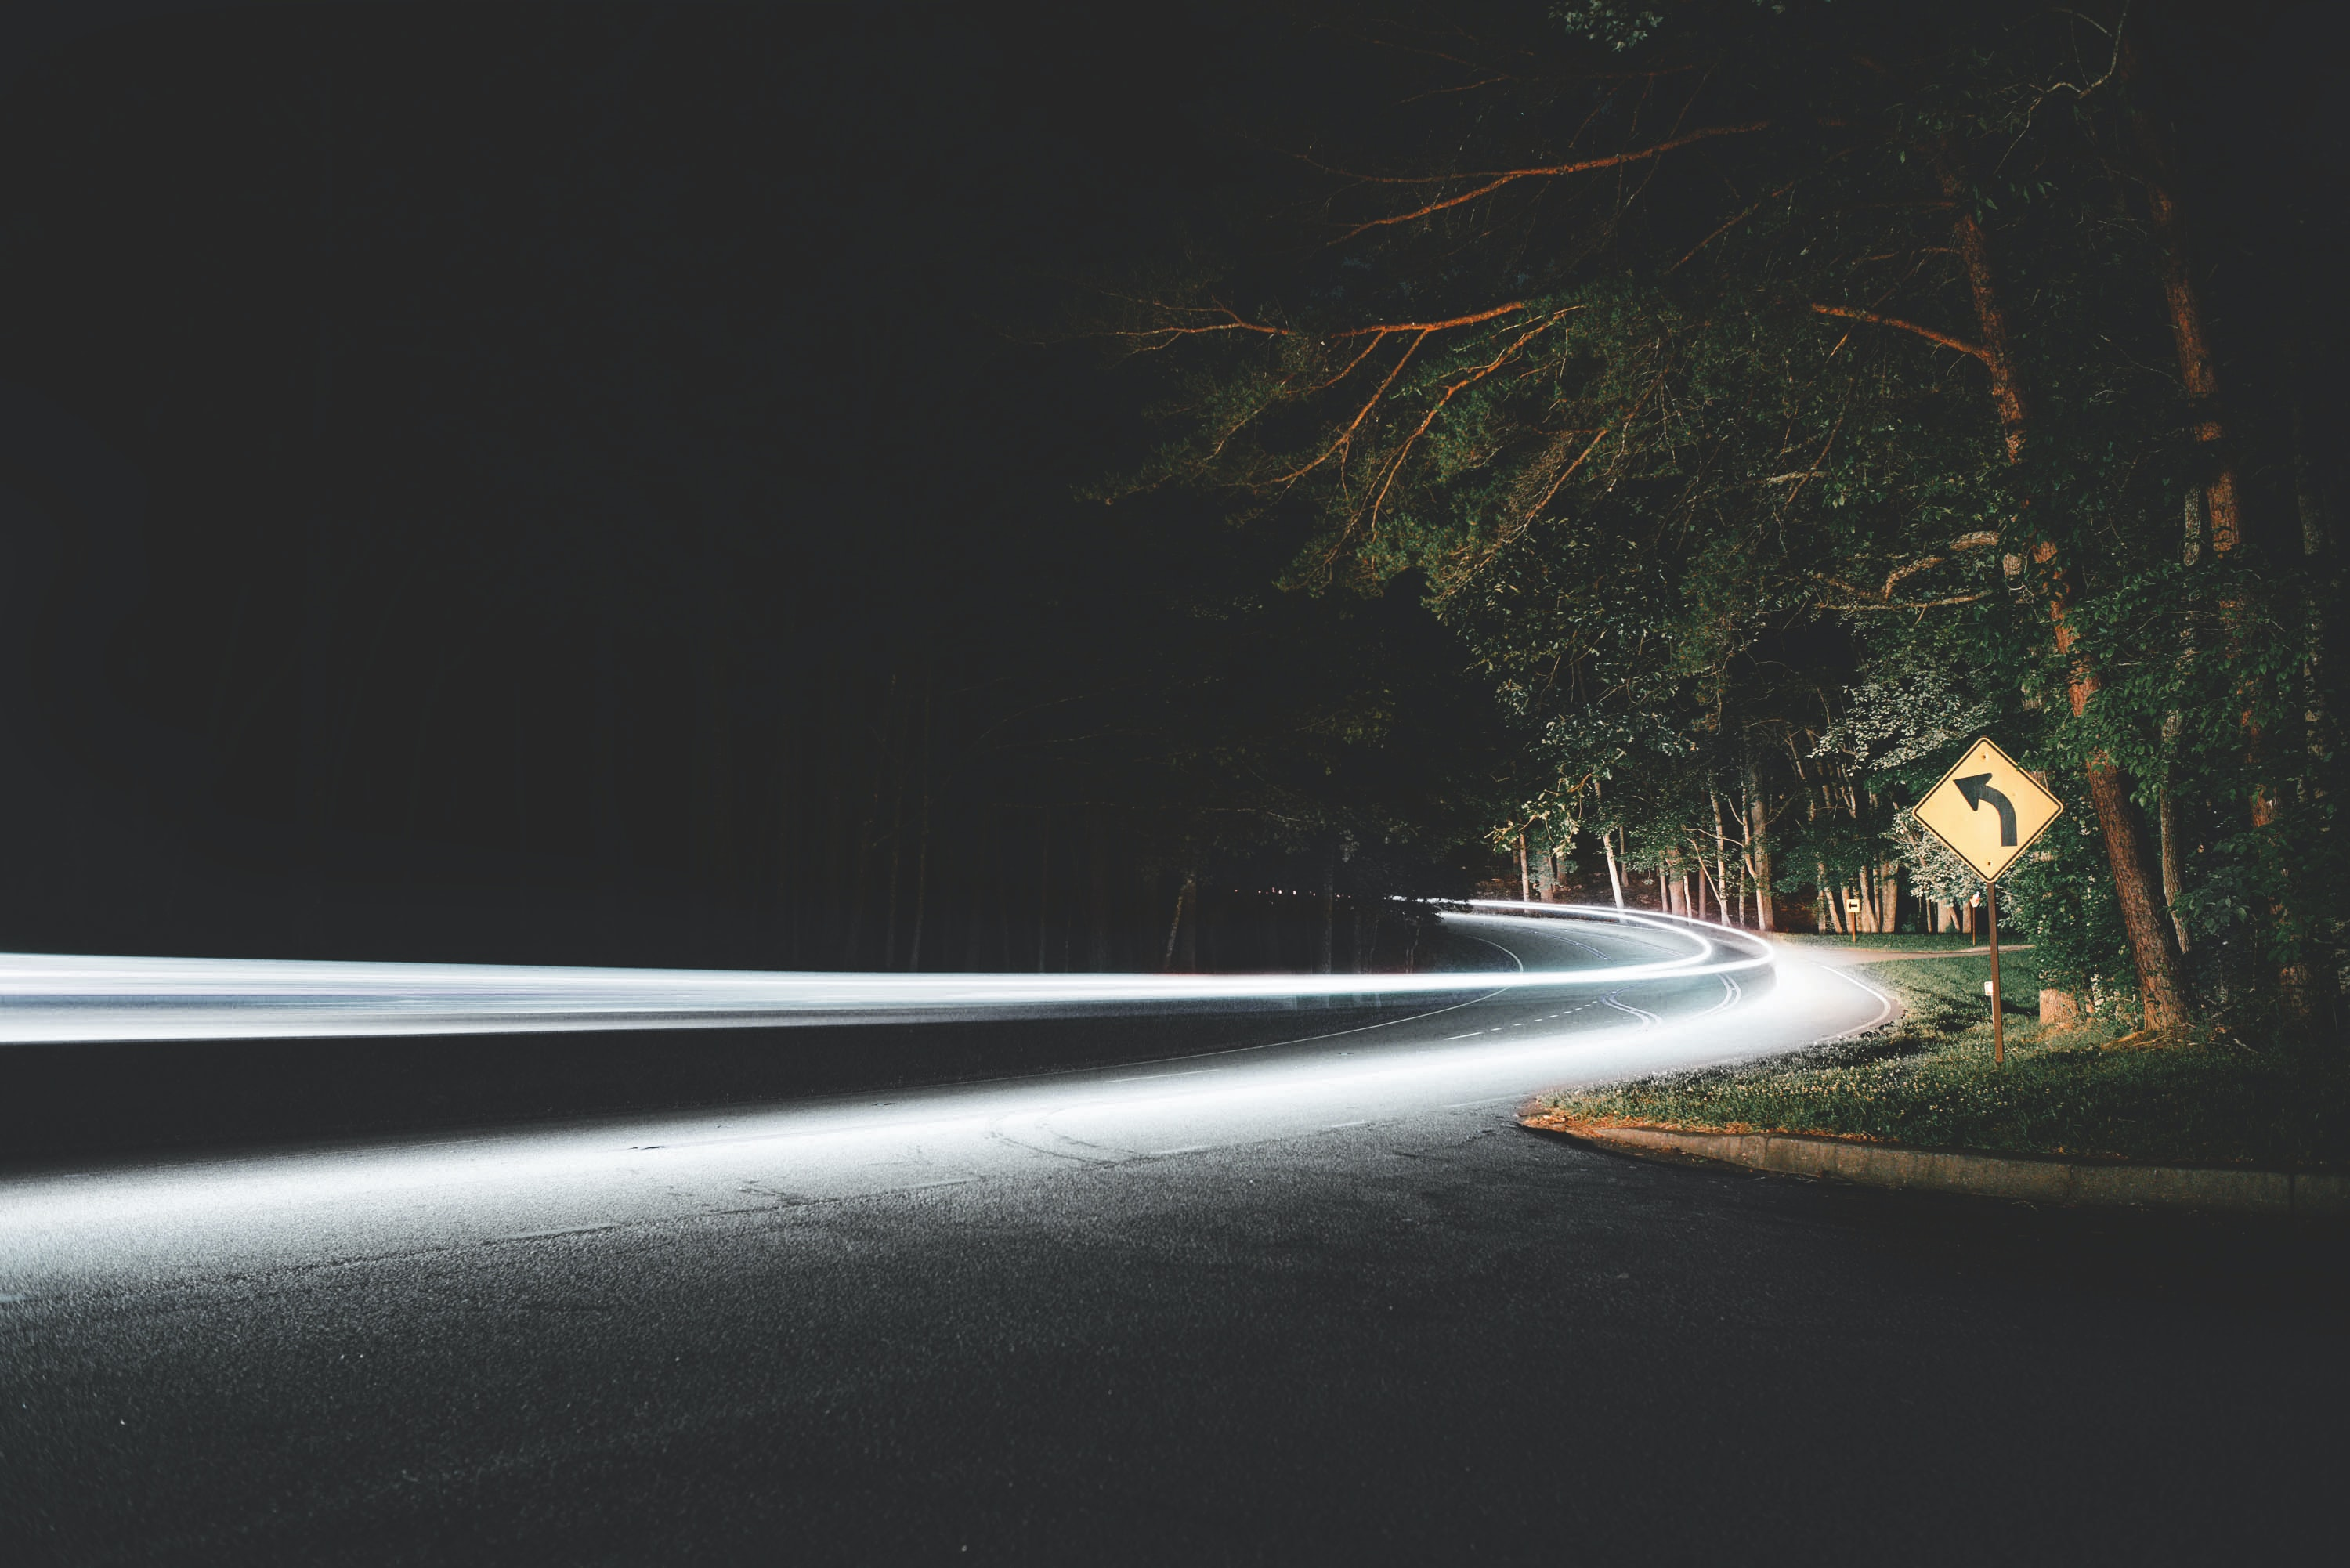 A time exposure shot of a street, with a turn sign signaling toward Kings Mountain